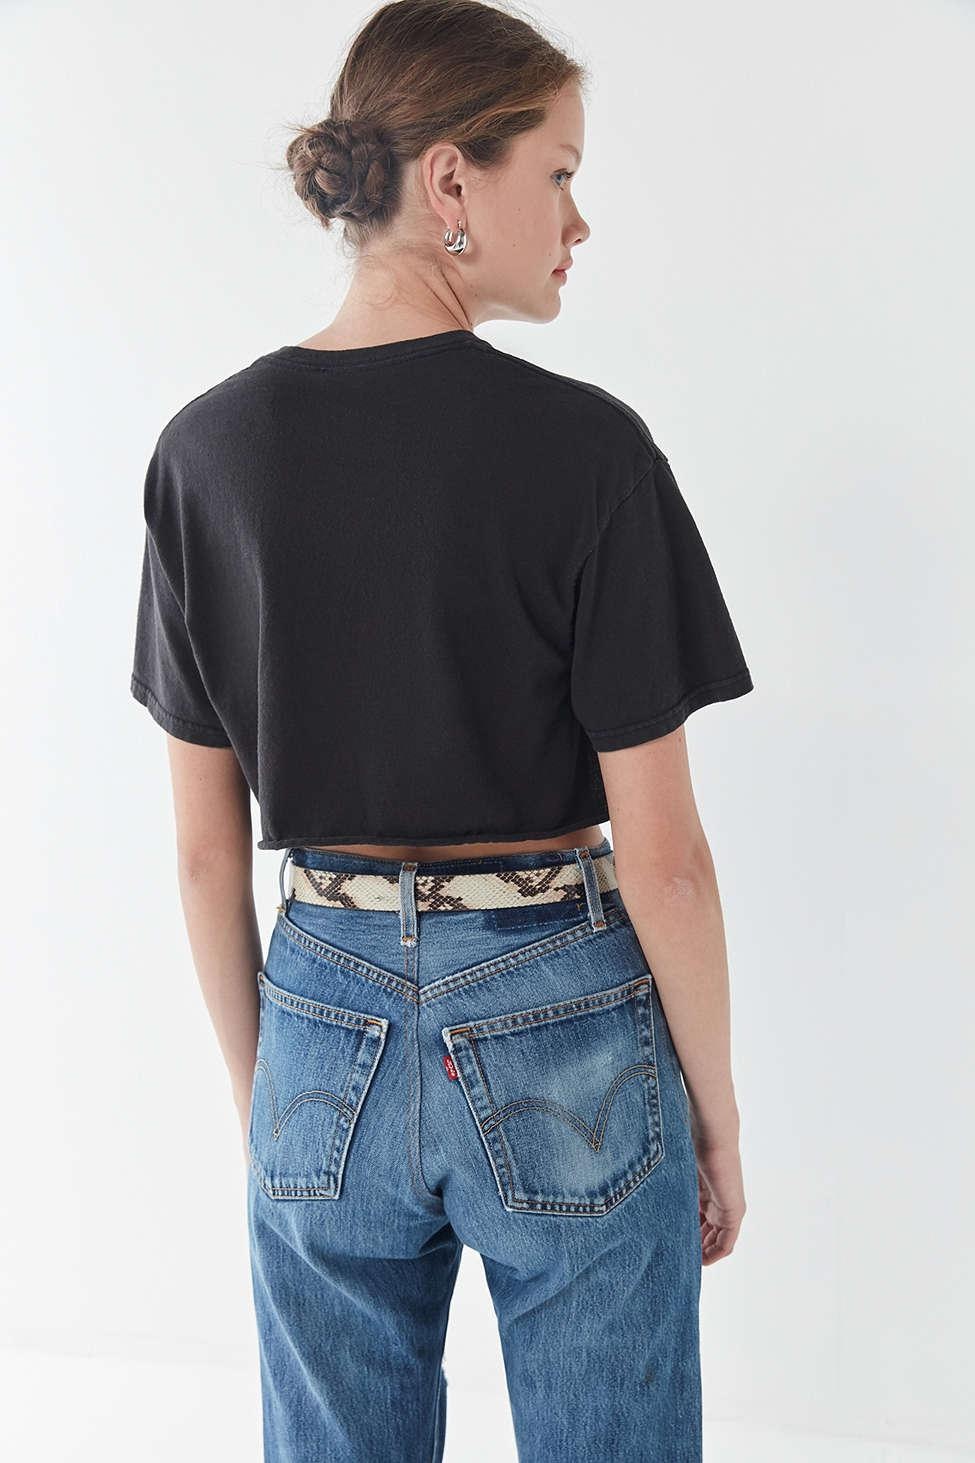 56d3c9992f77b Lyst - Urban Outfitters Ac dc Cropped Tee in Black